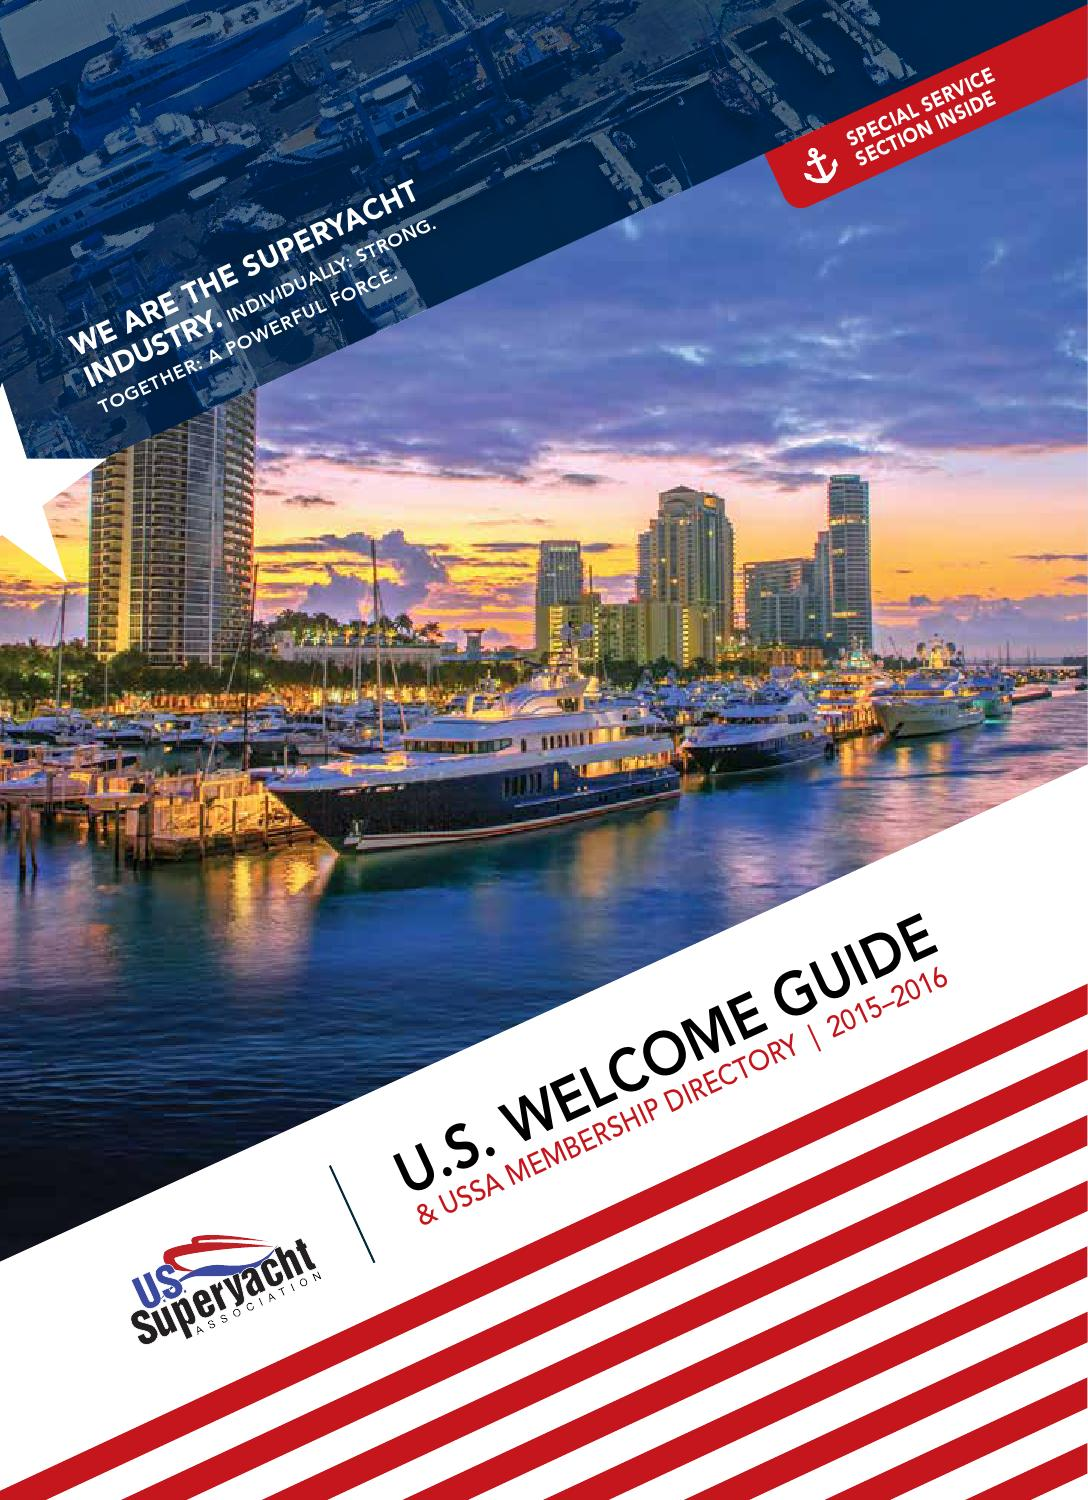 USSA Welcome Guide & Directory 2015-2016 by Studiorod - issuu